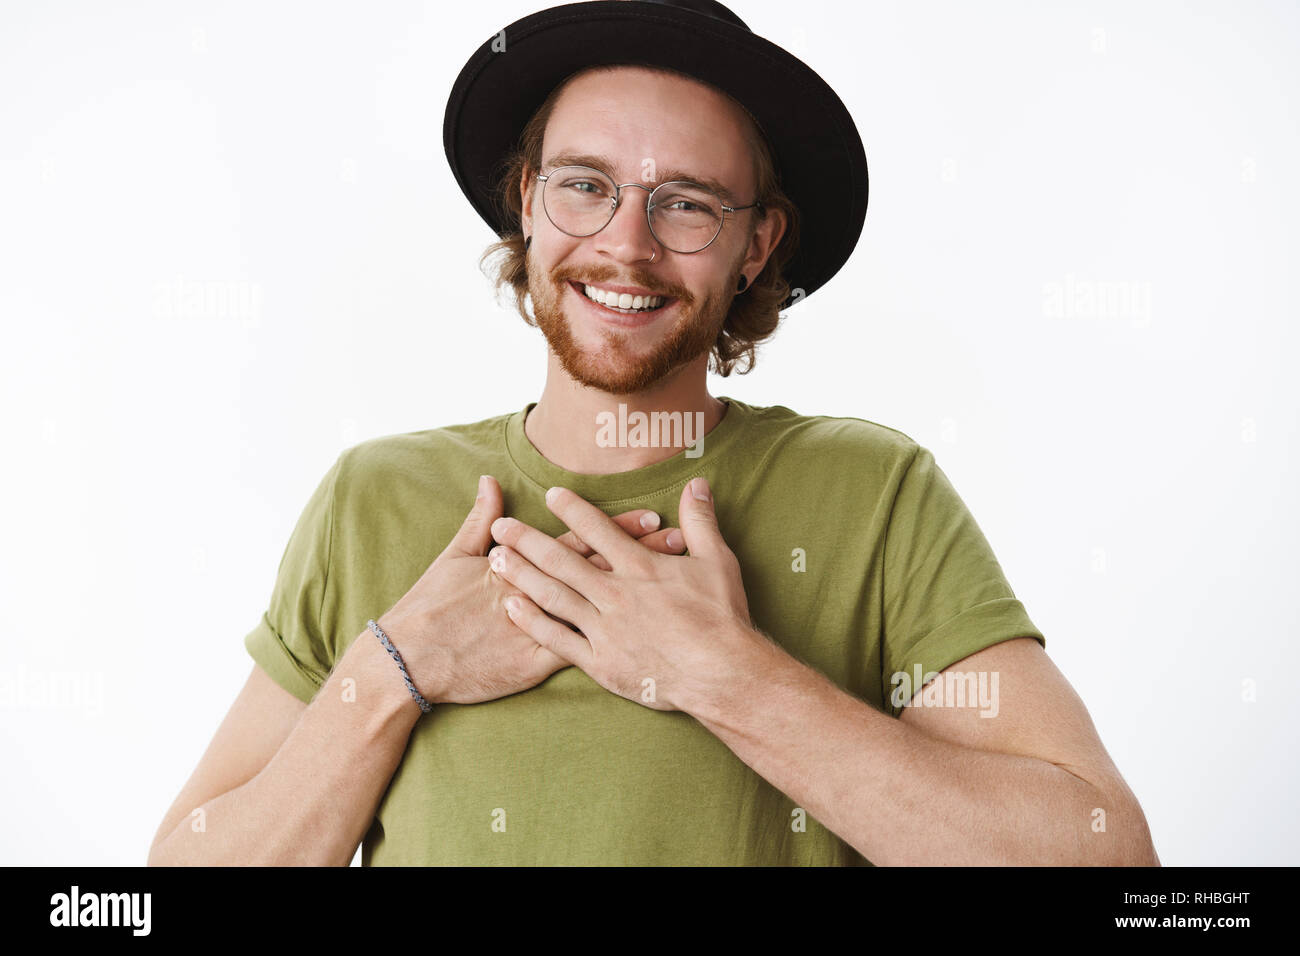 Oh thanks you should not have. Portrait of touched and delighted bday man with glasses, pierced nose and hat holding hands on body and smiling - Stock Image